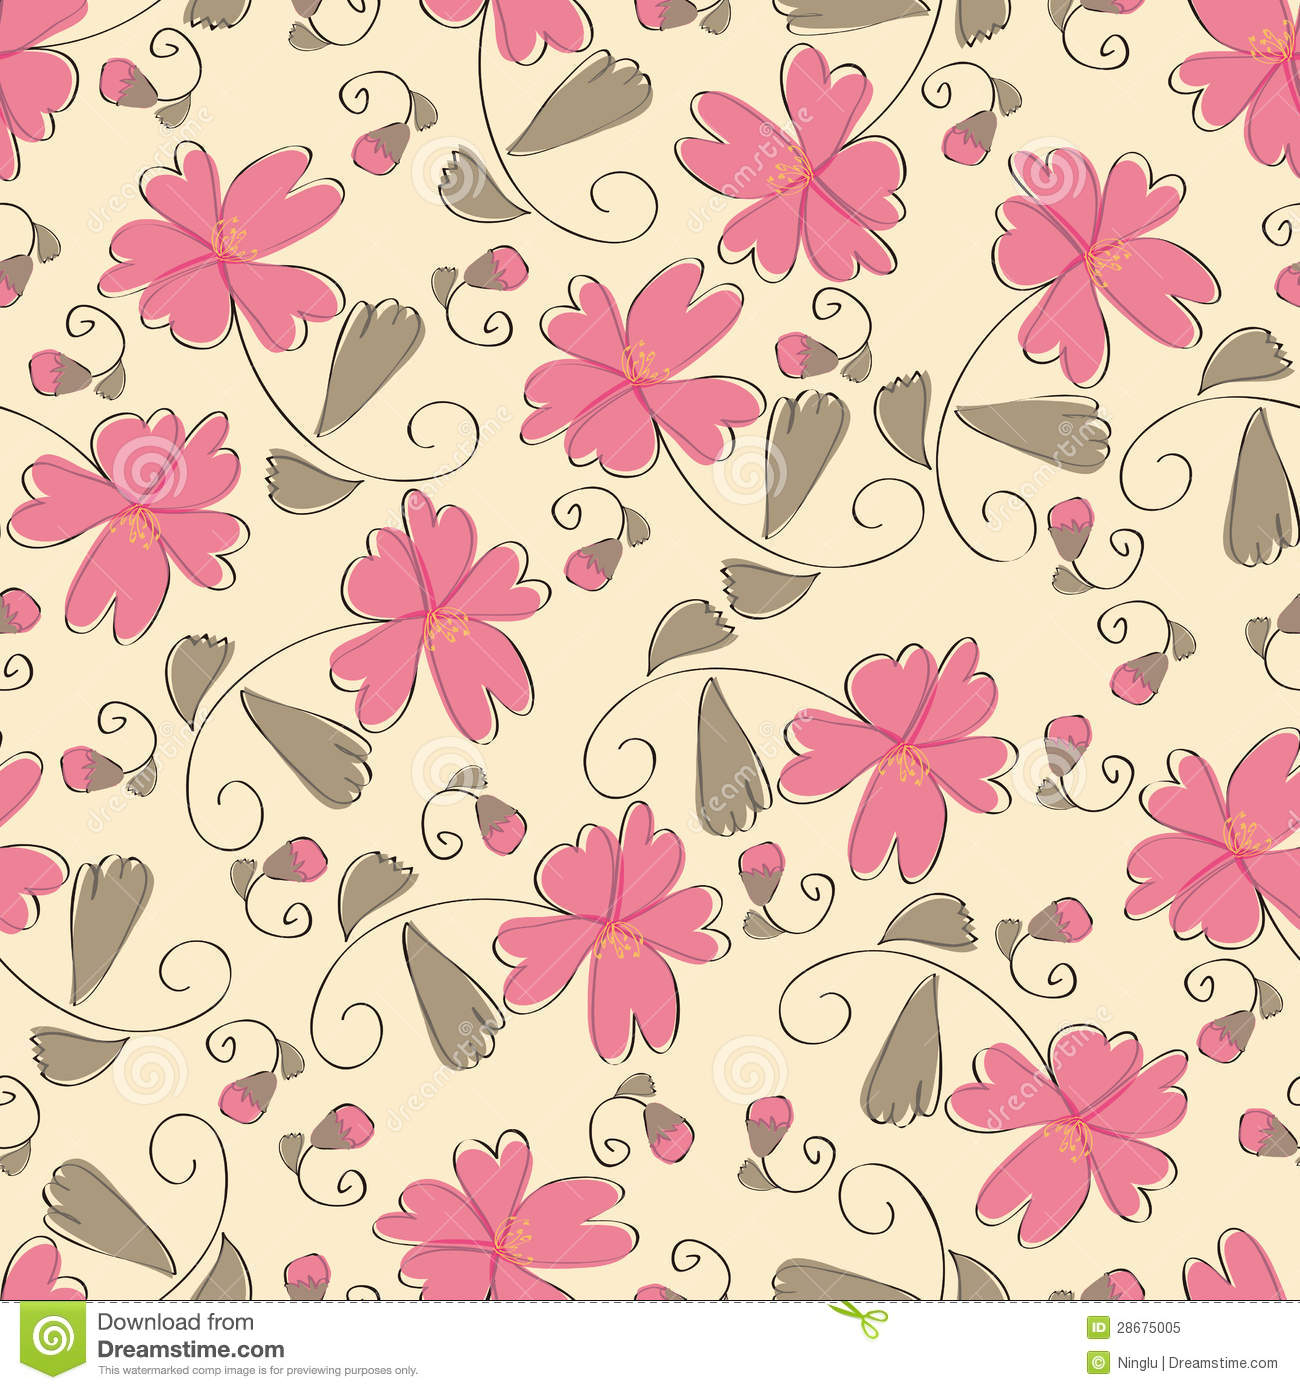 Seamless pink floral pattern - photo#10